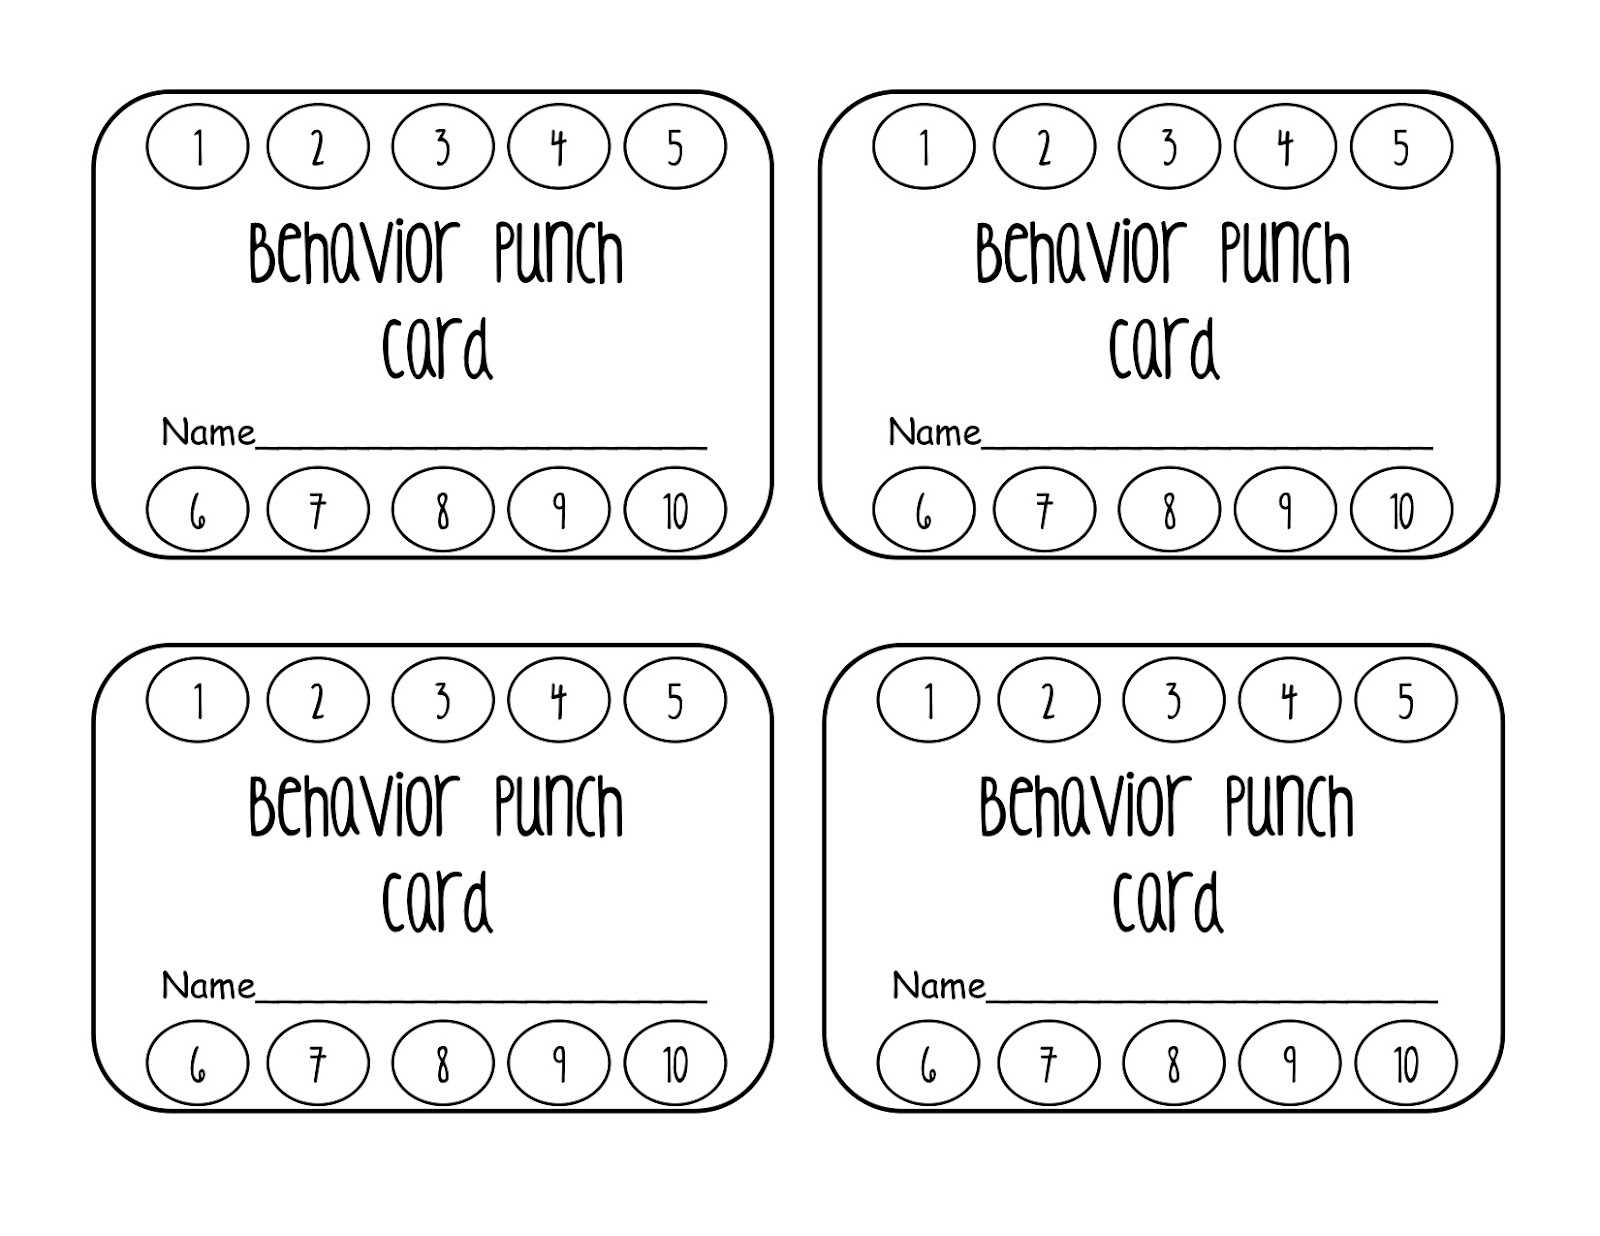 023 Template Ideas Behavior Punch Cards Pinterest Card In Free Printable Punch Card Template